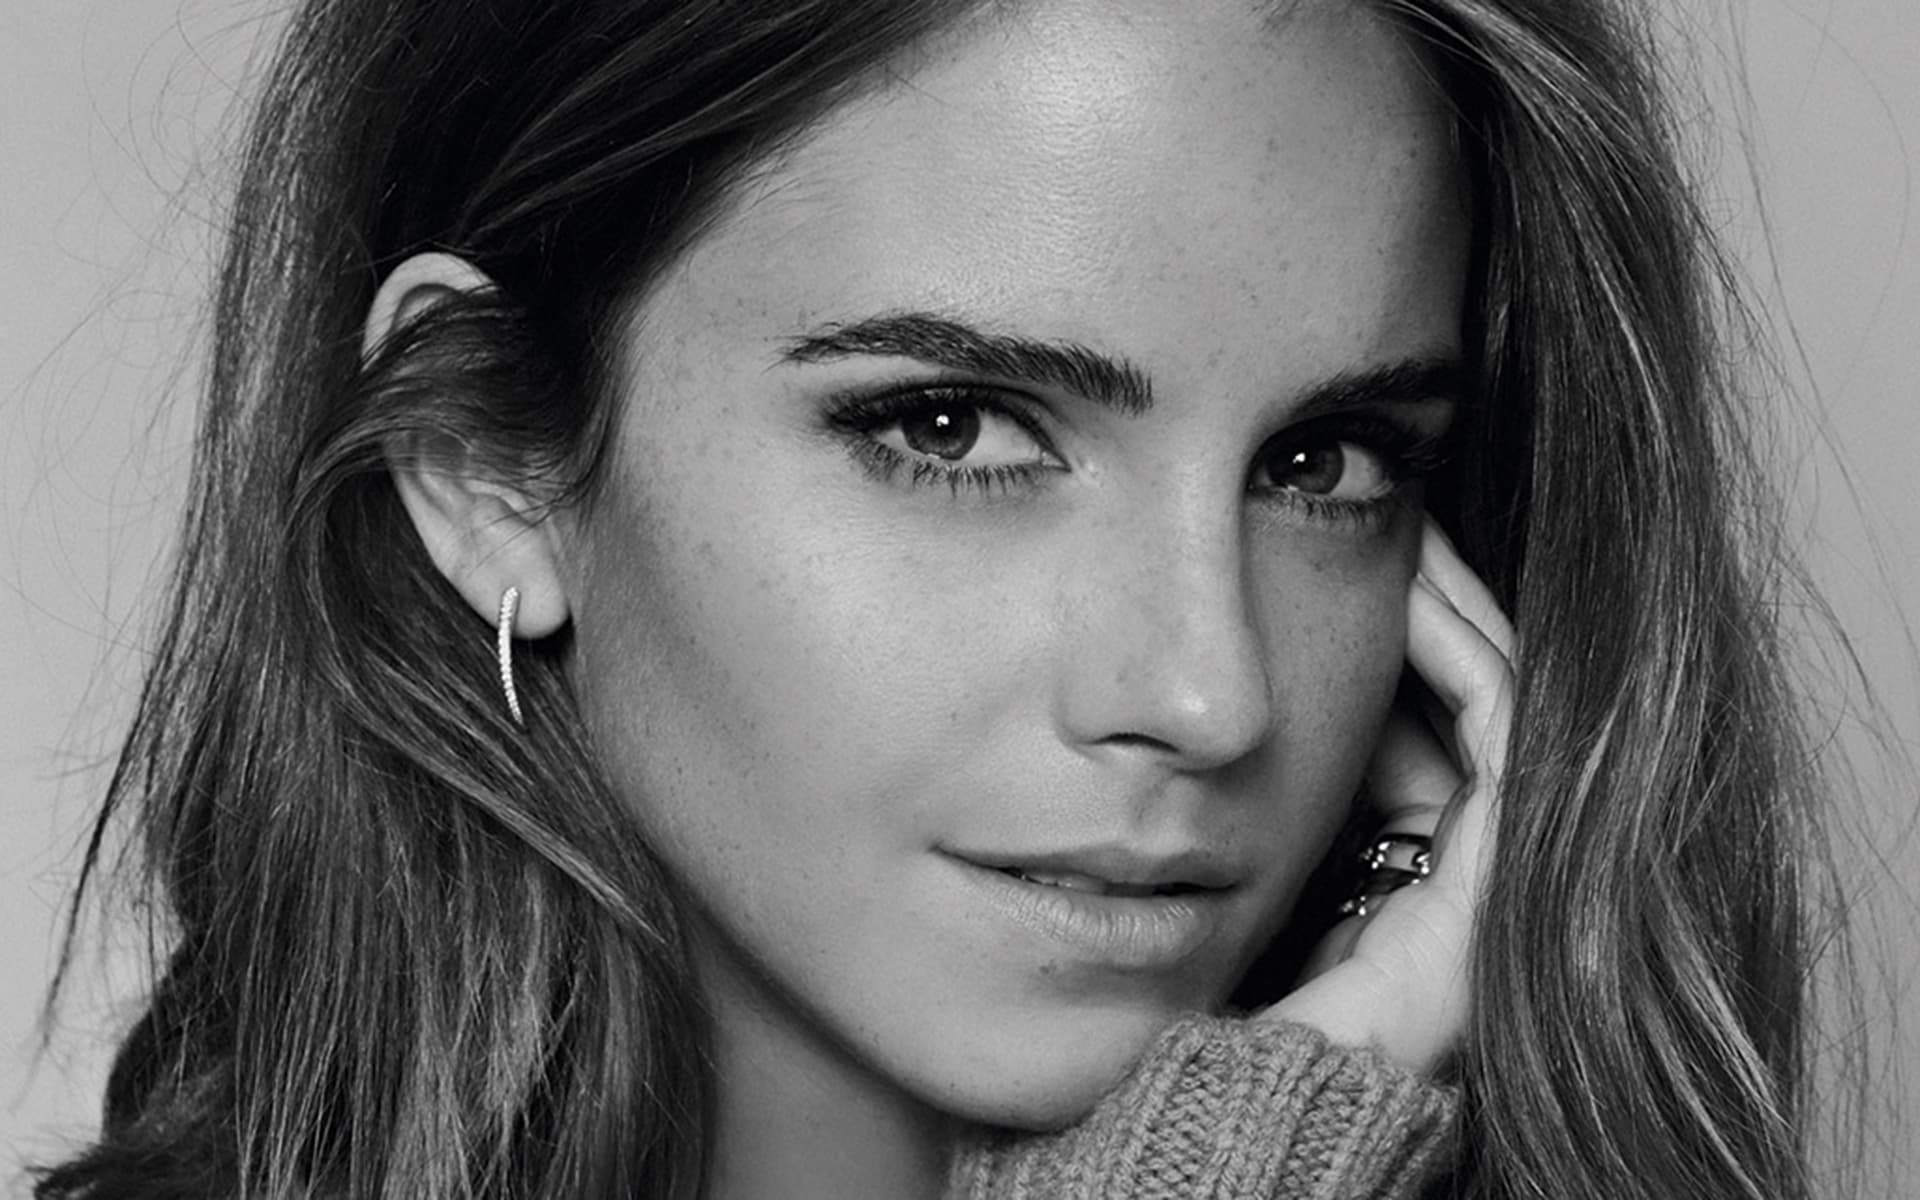 Emma Watson 2017 wallpaper by chococruise | RevelWallpapers.net